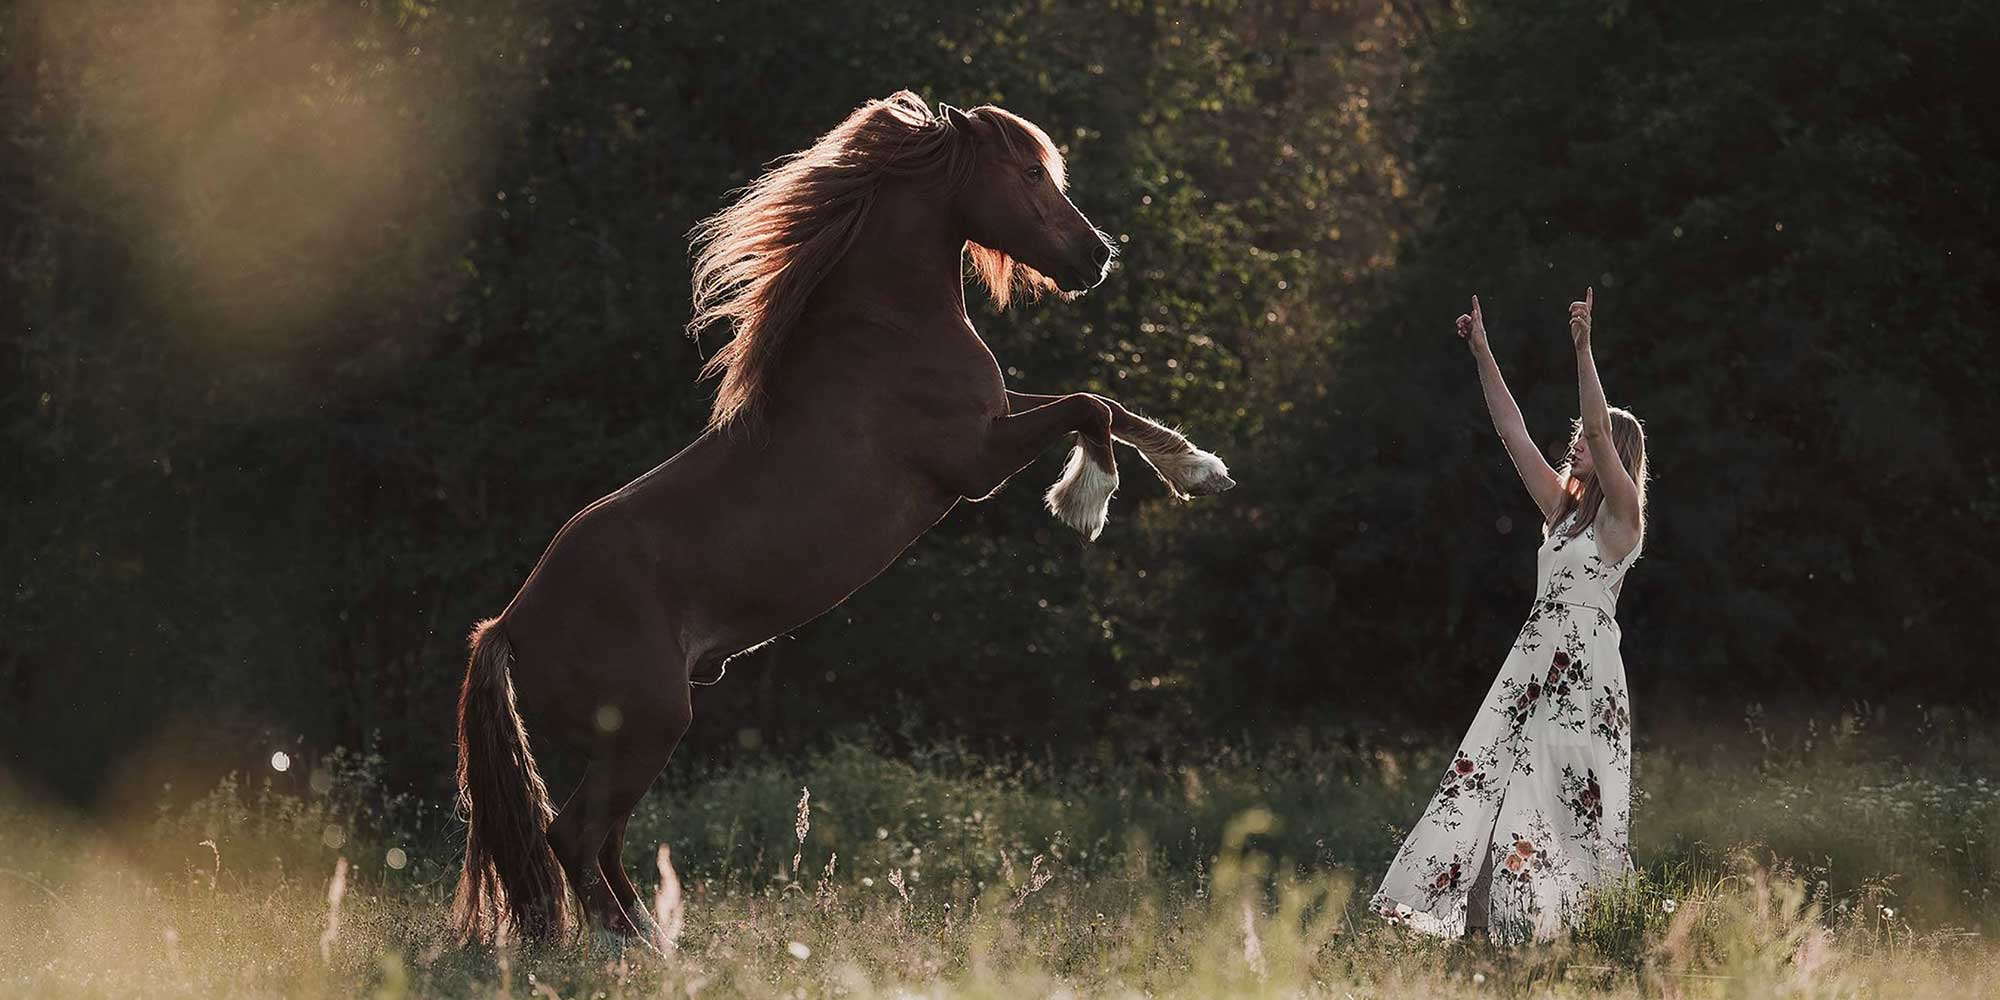 EQ Graphics   Bridleless Horse Rearing At Liberty and a Girl - Sunset Photography